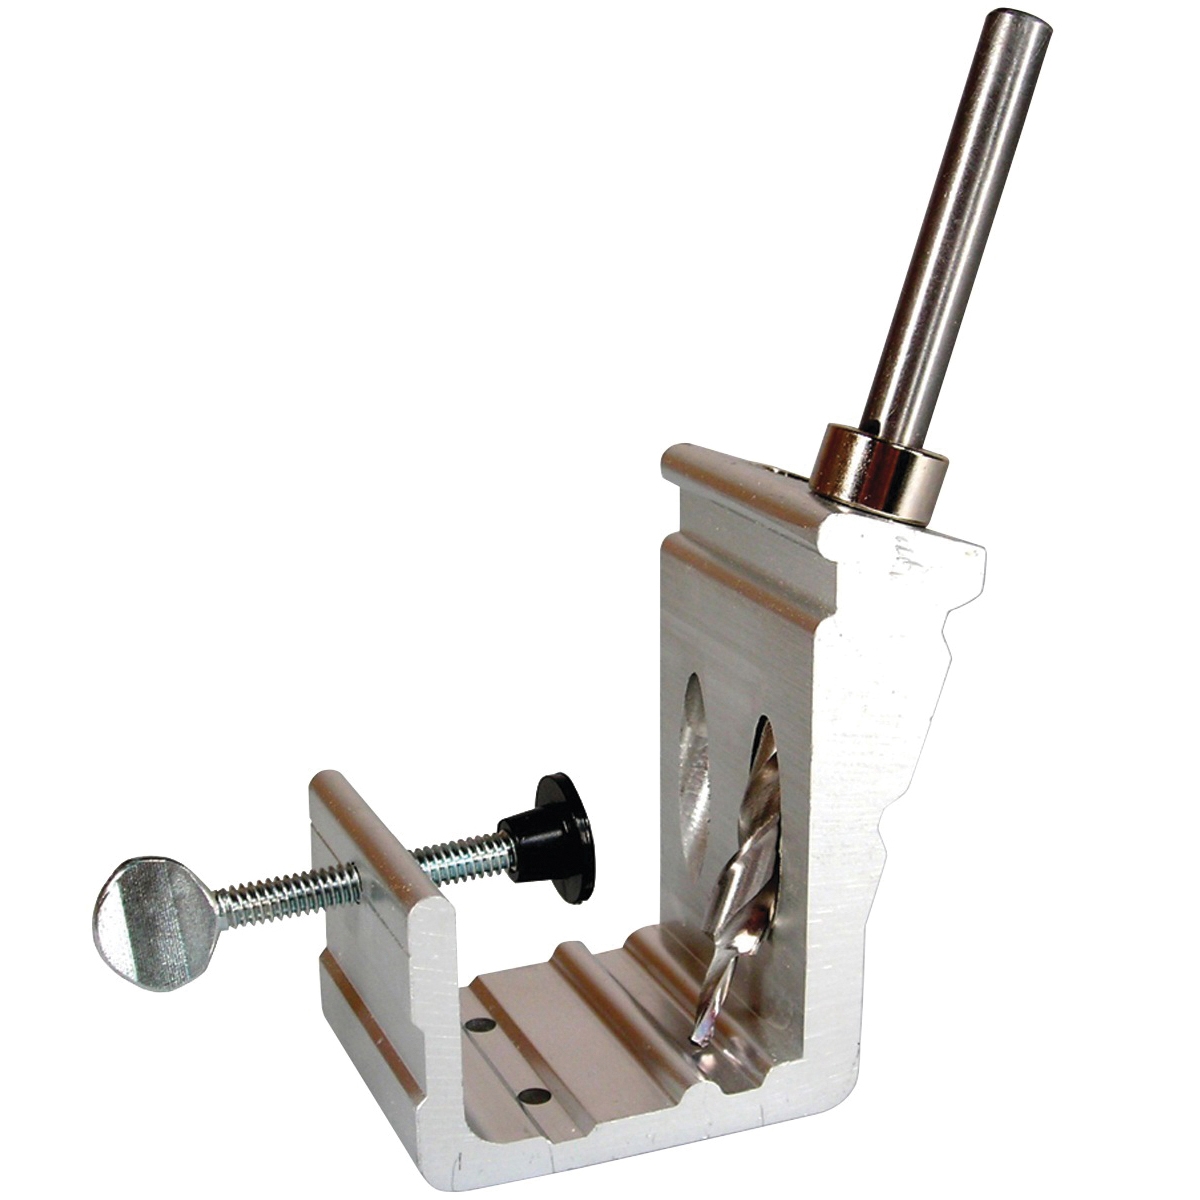 Picture of GENERAL E-Z Pro 849 Pocket Hole Jig Kit